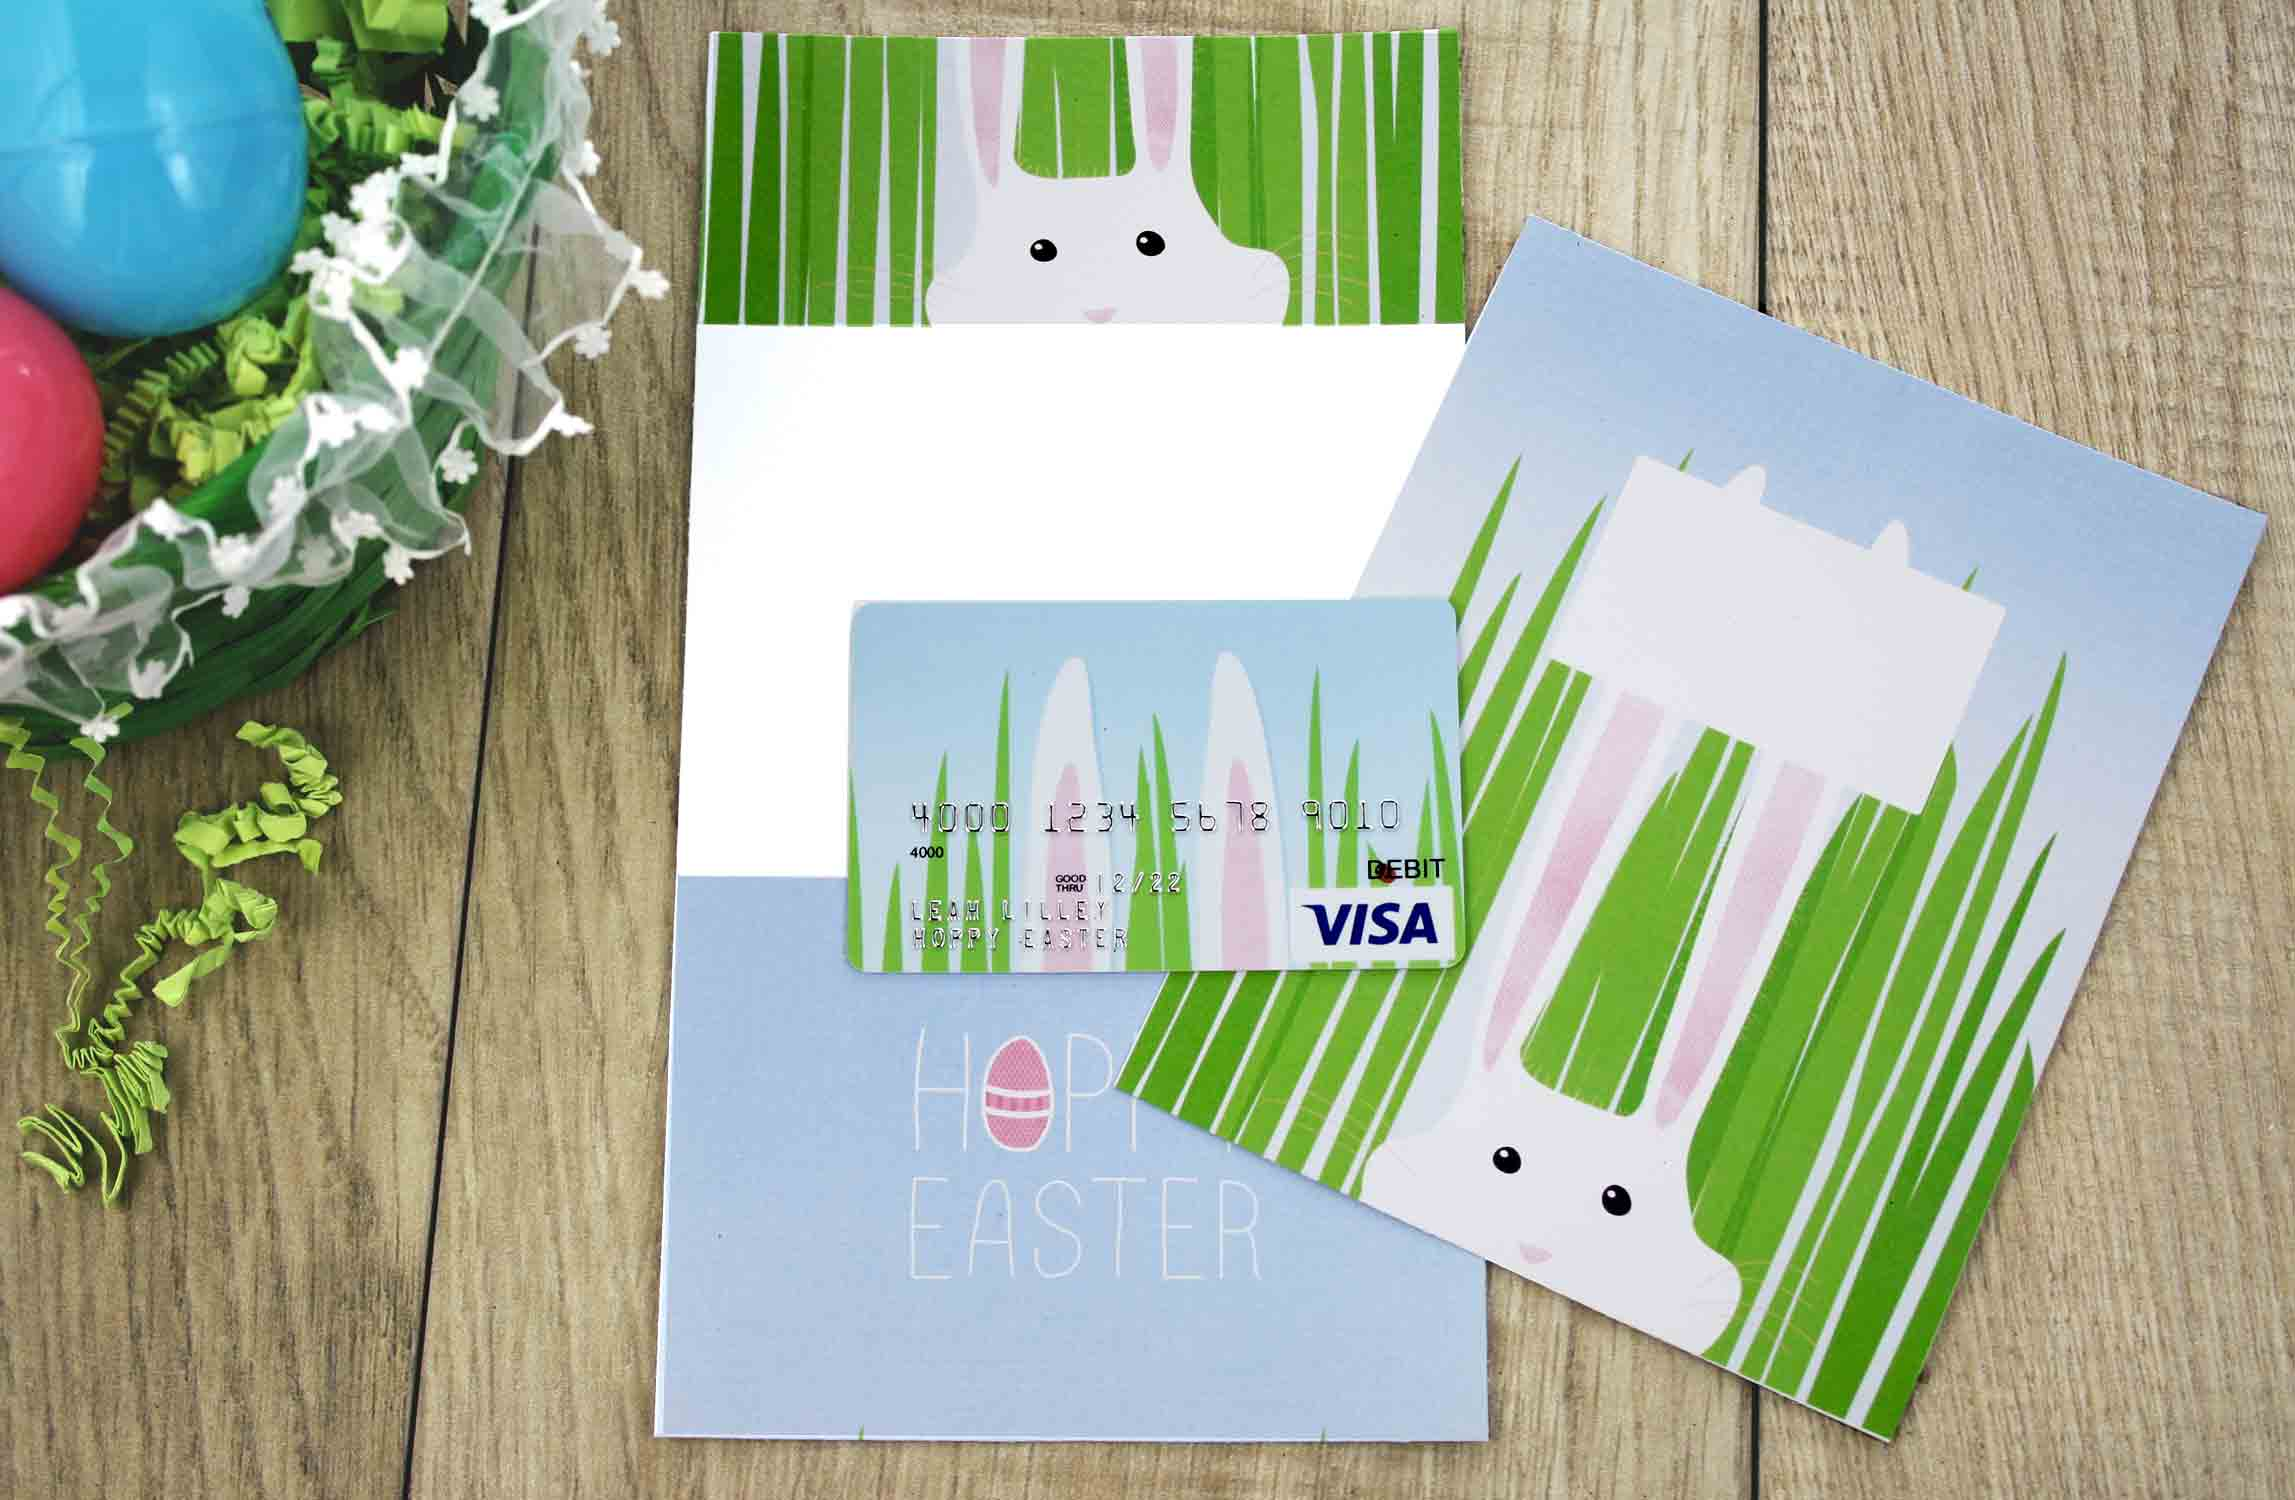 Free printable hoppy easter gift card holder gcg supplies to make gift card holder negle Gallery